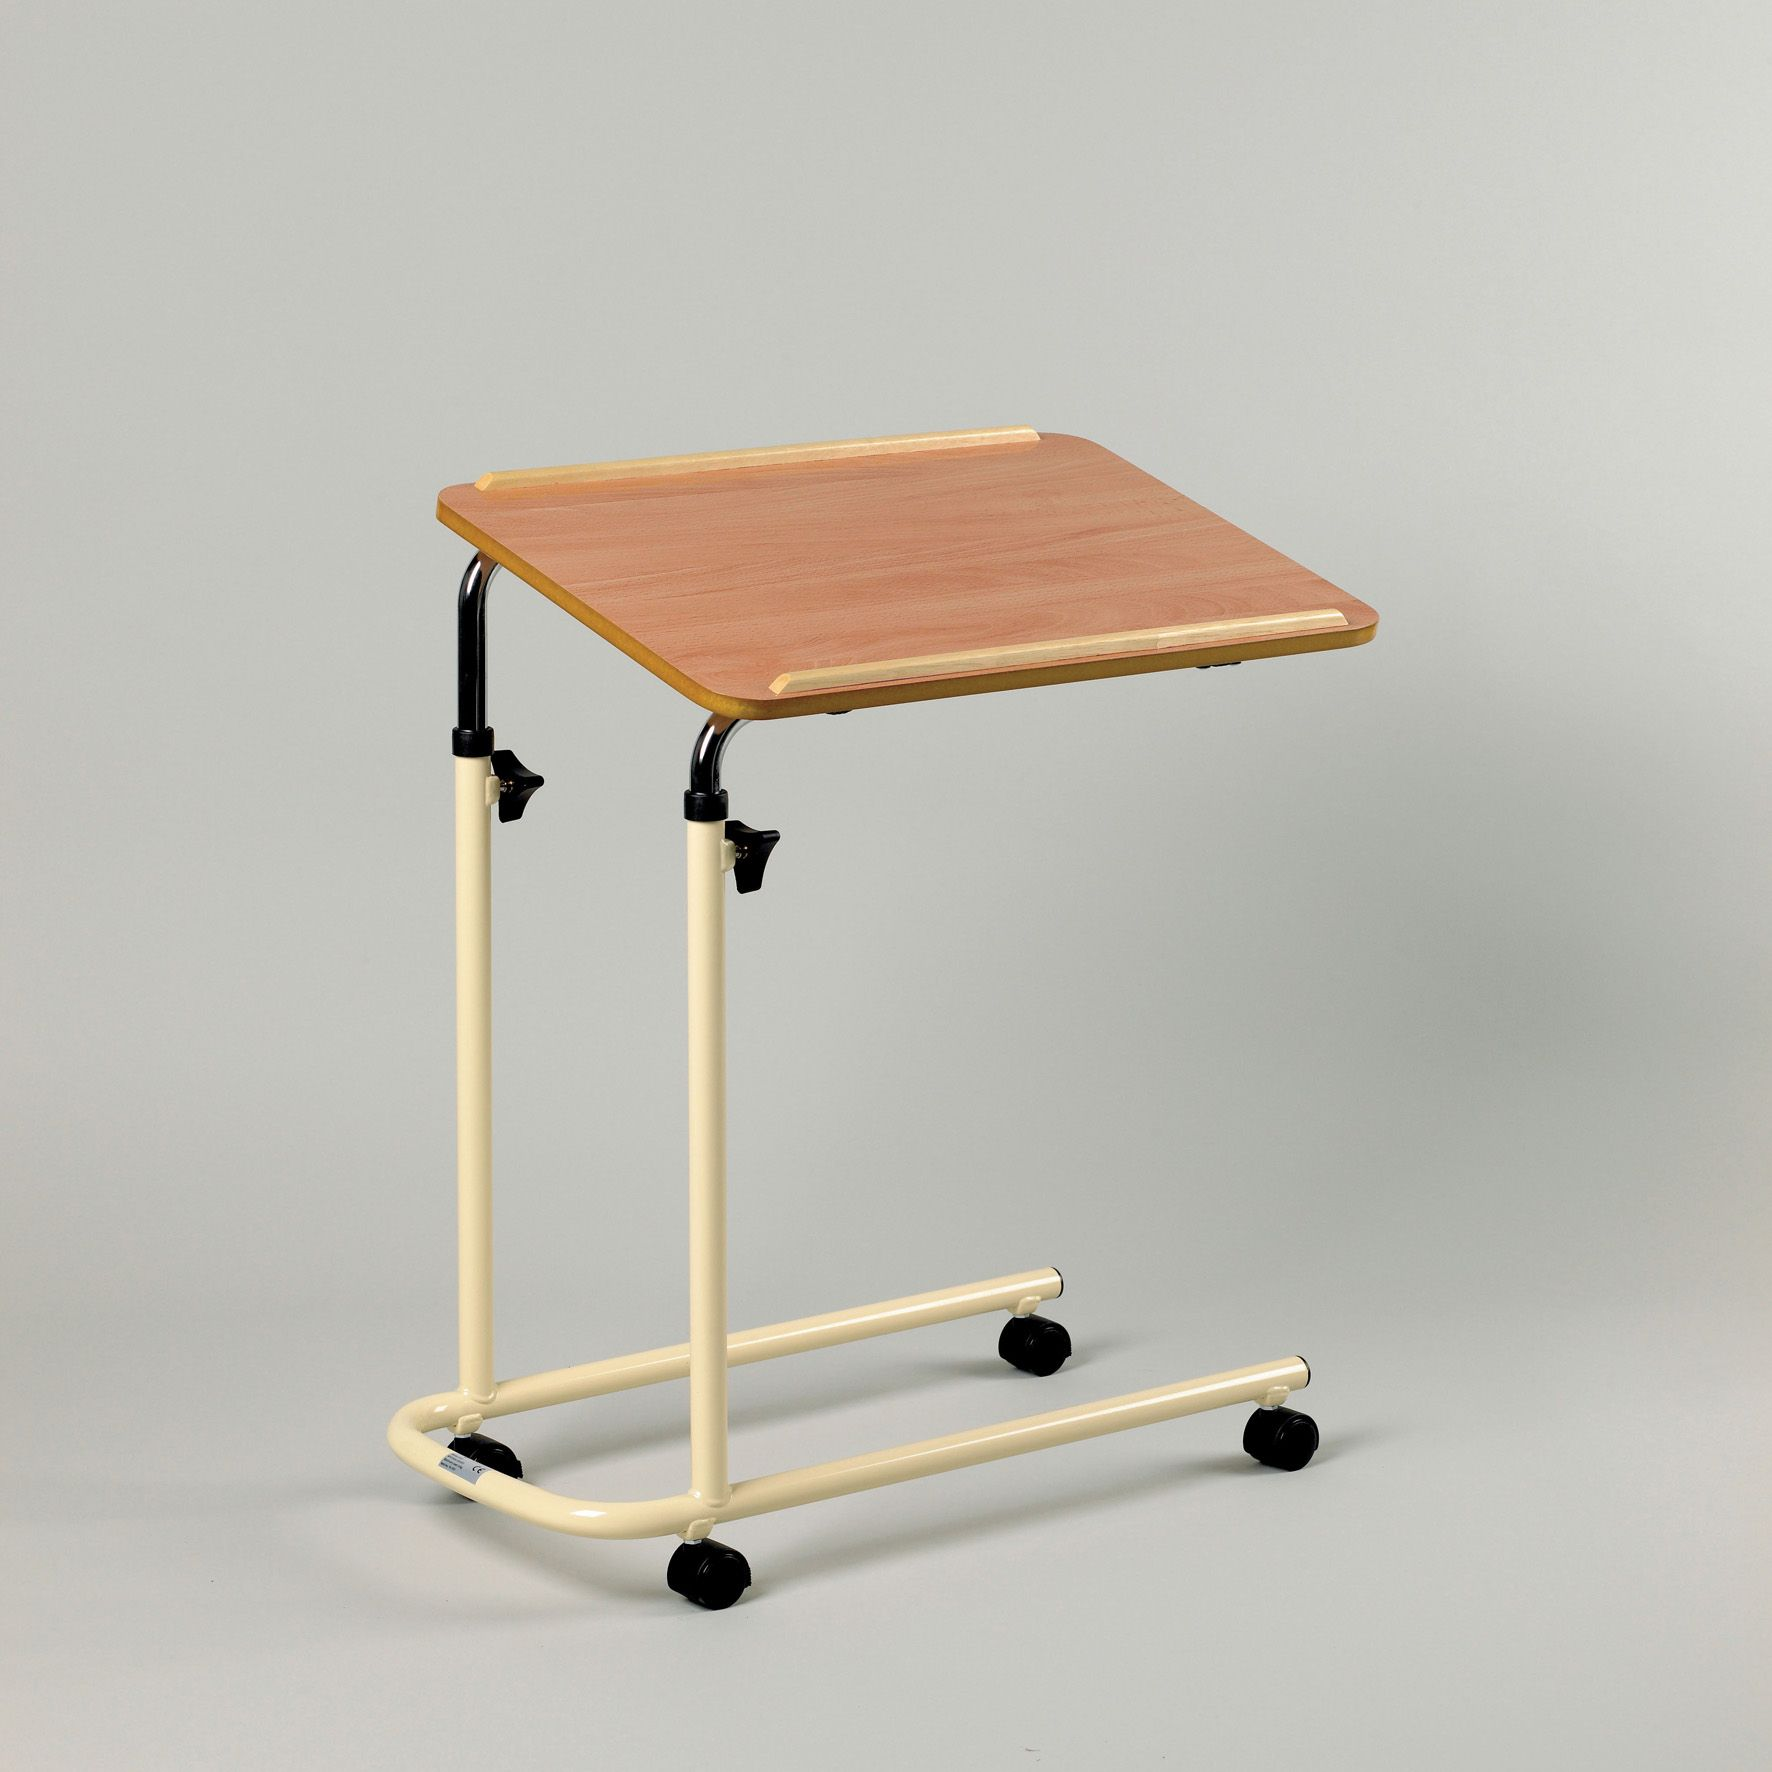 Overchair Table Cantilever With Wheels Mobility Solutions